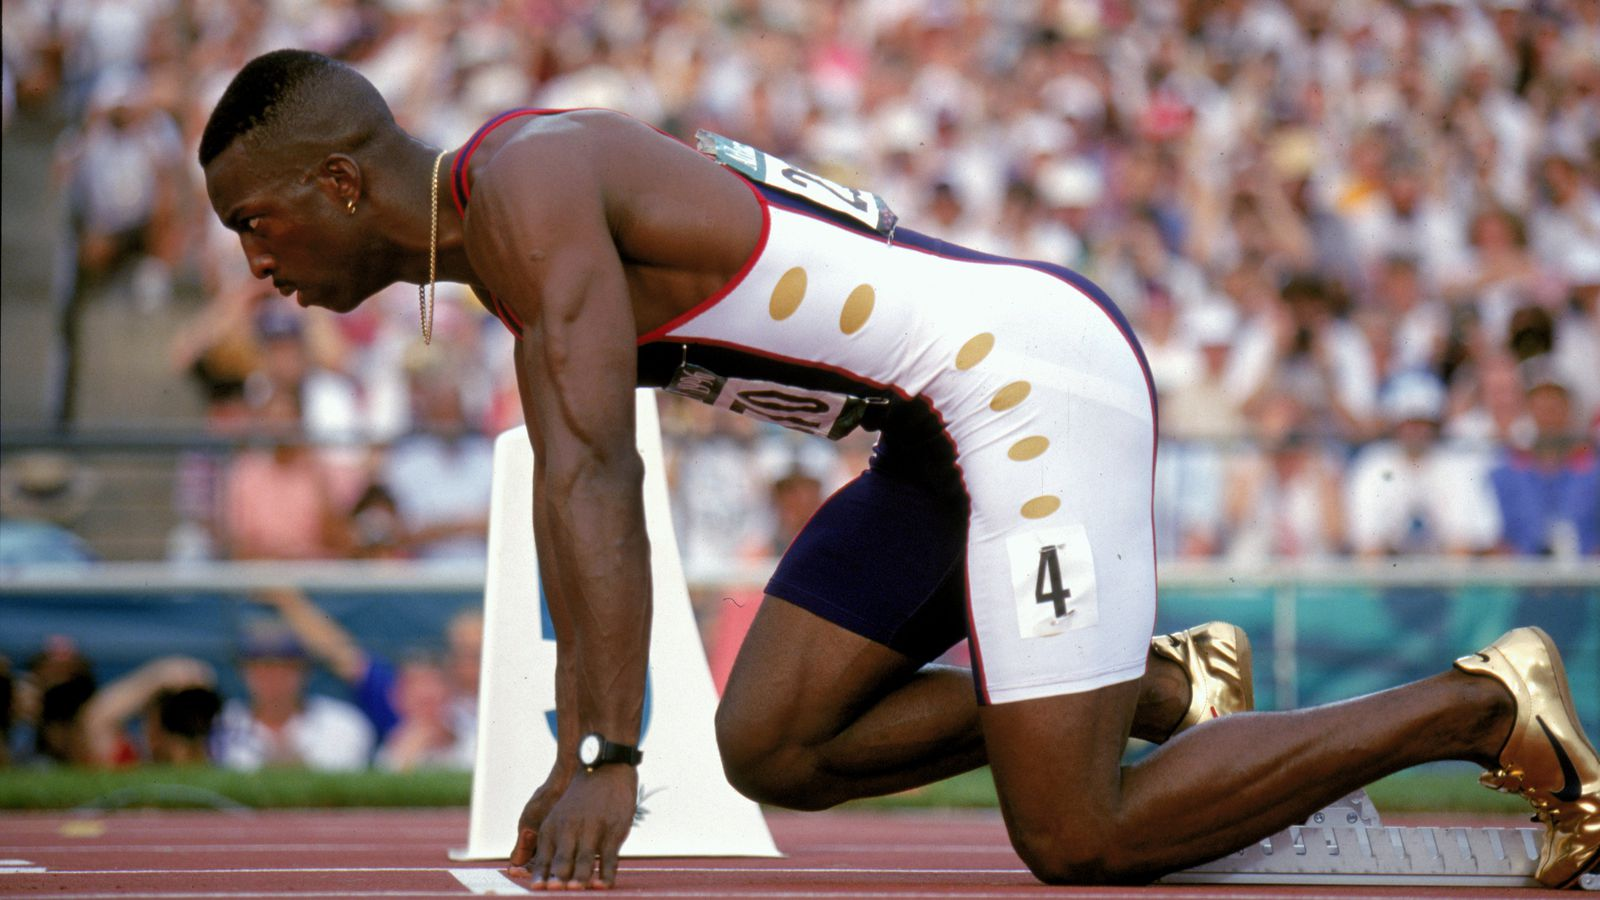 20 years ago, Michael Johnson set a gold standard for speed that's impossible to forget ...